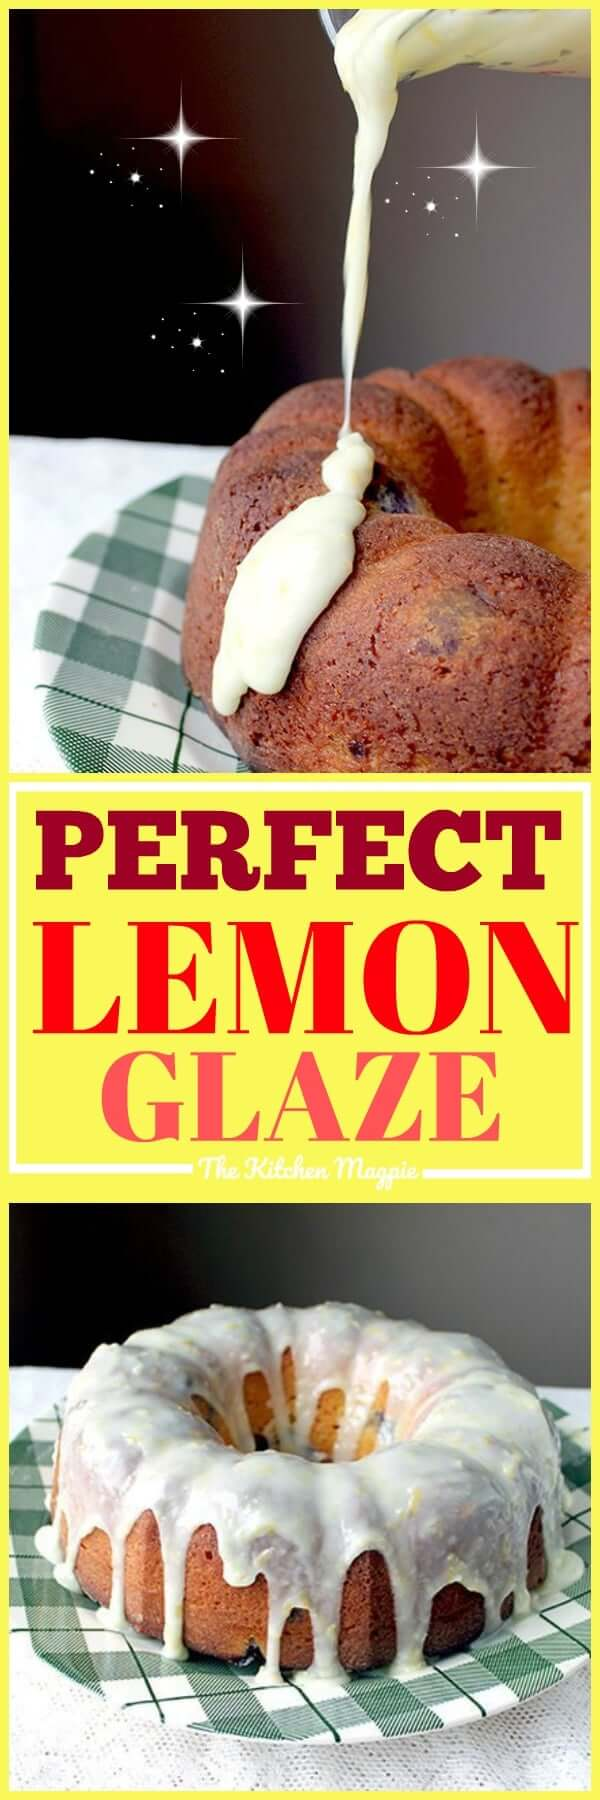 Lemon Icing Glaze is very easy to make and consists of four simple ingredients. Read to find out how to make this great, simple lemon glaze that will be amazing on your cakes, cupcakes and more! #dessert #lemon #icing #frosting #recipe #glaze